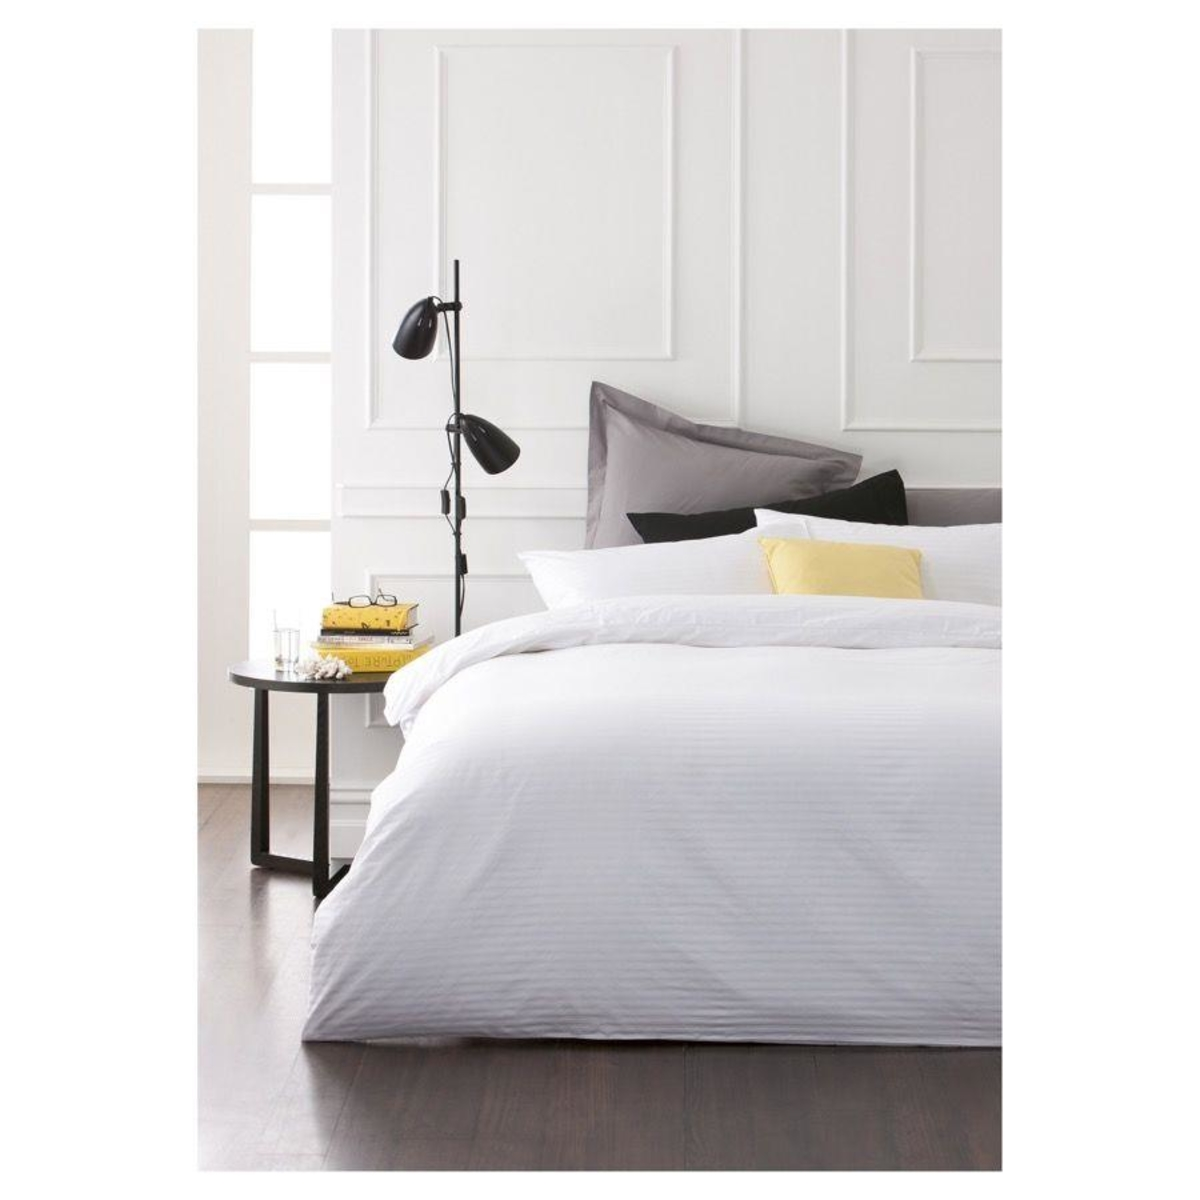 Pottery Barn Duvet | White Duvet Cover Queen | Duvet Cover Queen